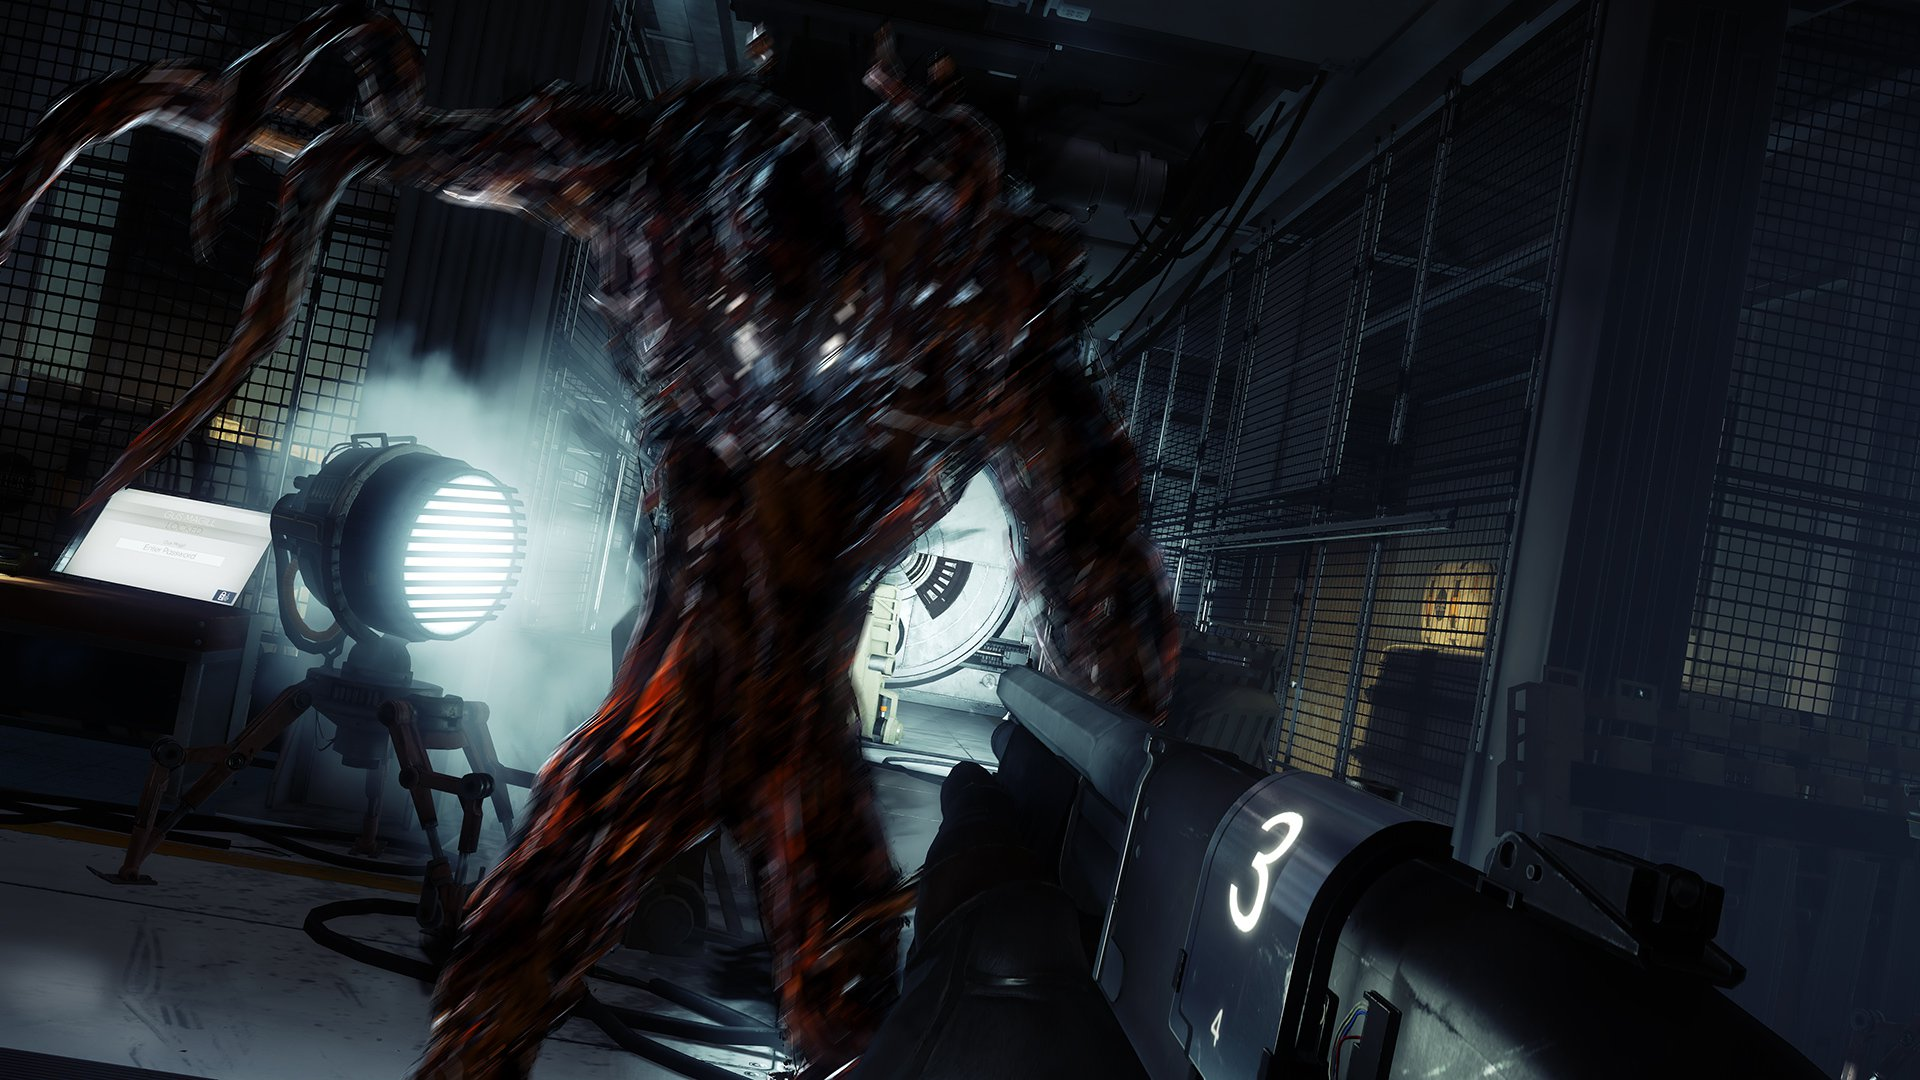 Tentacle alien monsters aren't gonna get in-between me, my shotgun, and this space mystery